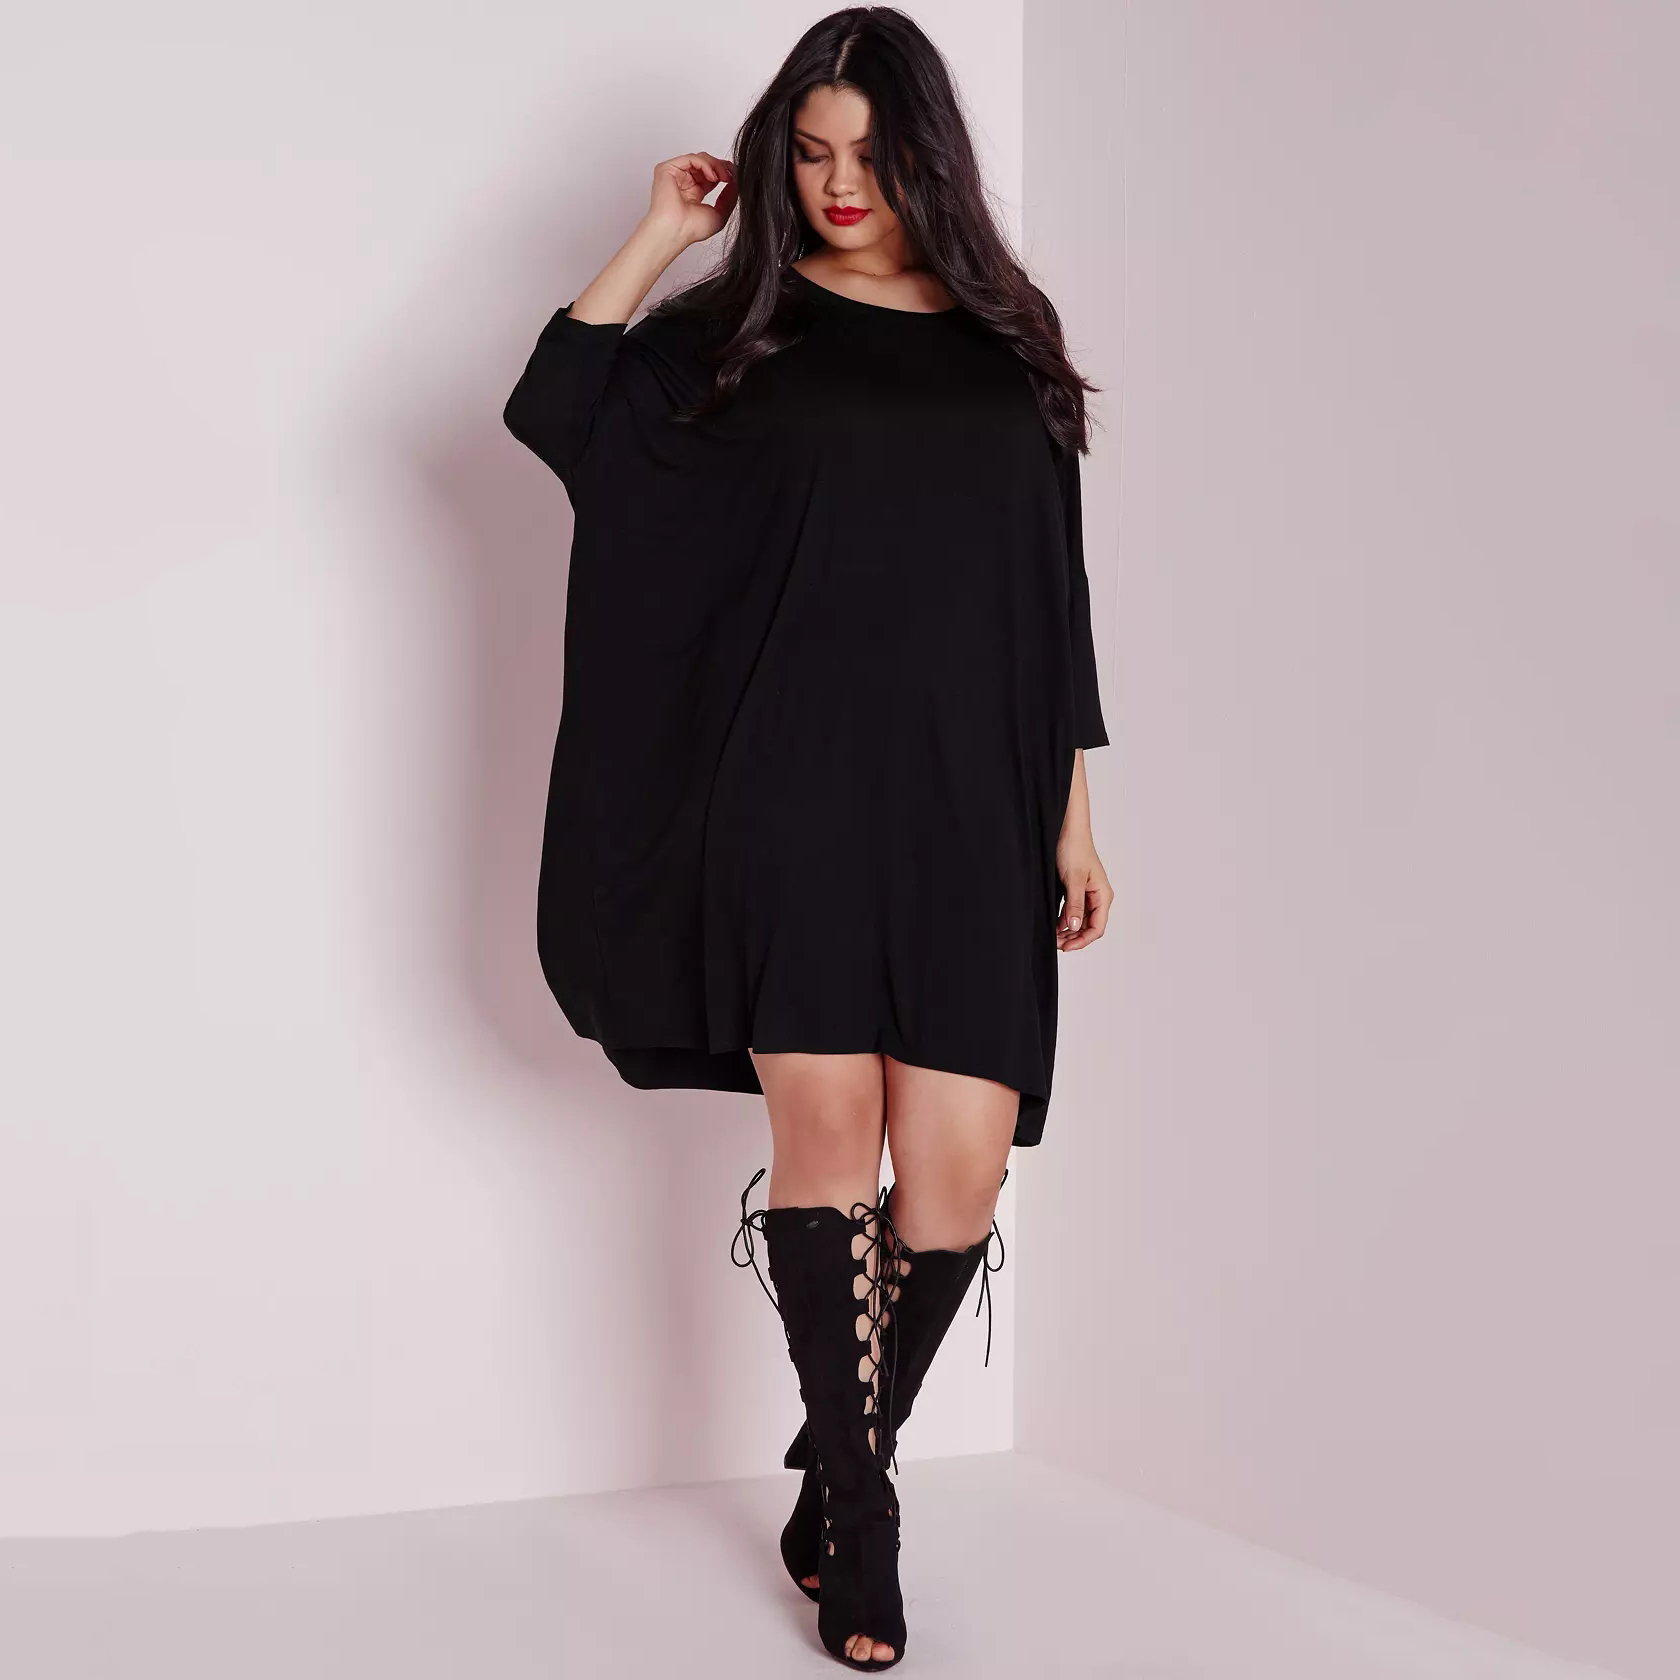 4dce323ff1f MCO Casual Oversized Batwing Plus Size Womens Dress Ultimate Easy Tunic  Dresses Fashion Big Size Slouchy Women Clothing 6XL 7XL-in Dresses from  Women s ...